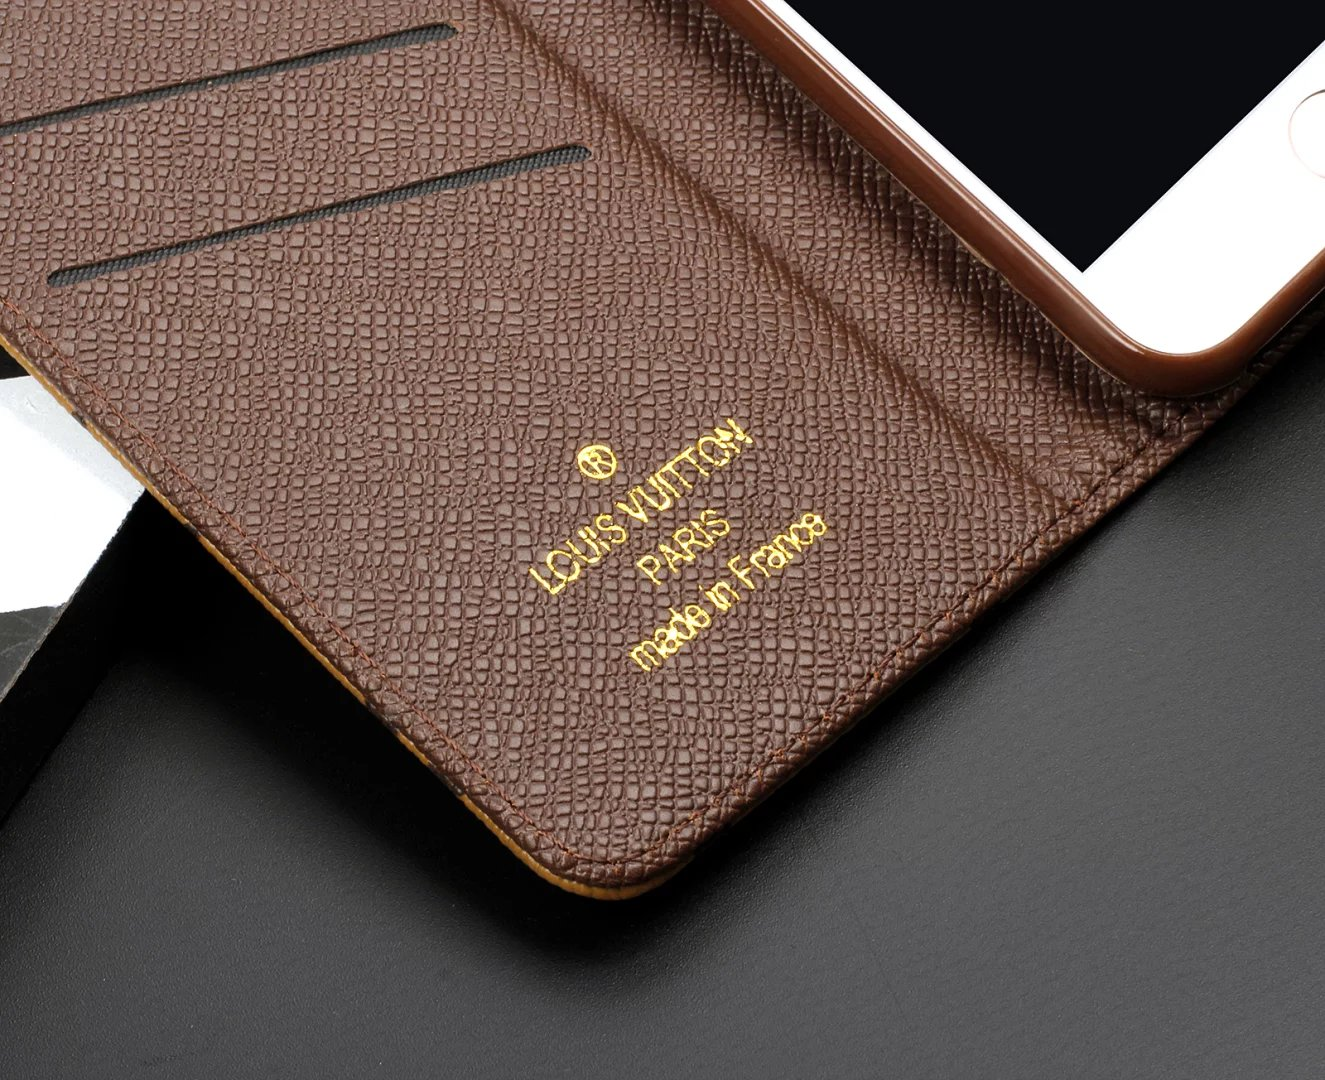 iphone 8 carrying case best iphone 8 cases Louis Vuitton iphone 8 case juice pack mophie cheap phone cases iphone 8 iphone covers for 8 custom iphone case maker i8 phone cases designer phone cases